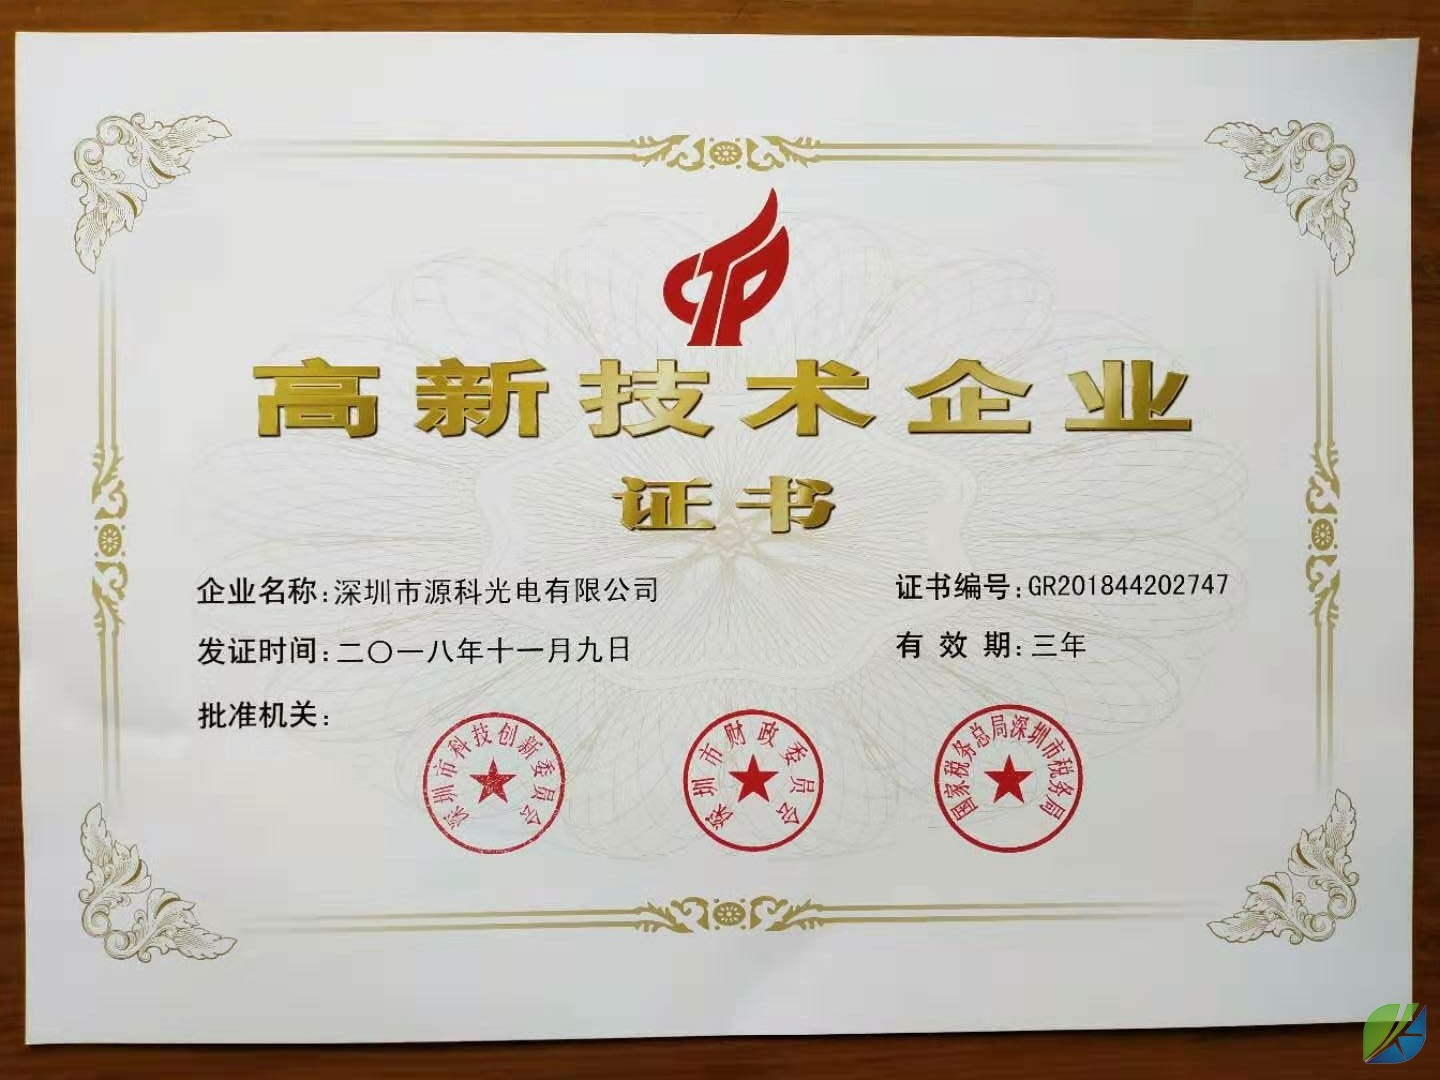 Congratulations to Shenzhen Yuanke Optoelectronics for winning the China National High-tech Enterprise Certificate!!!